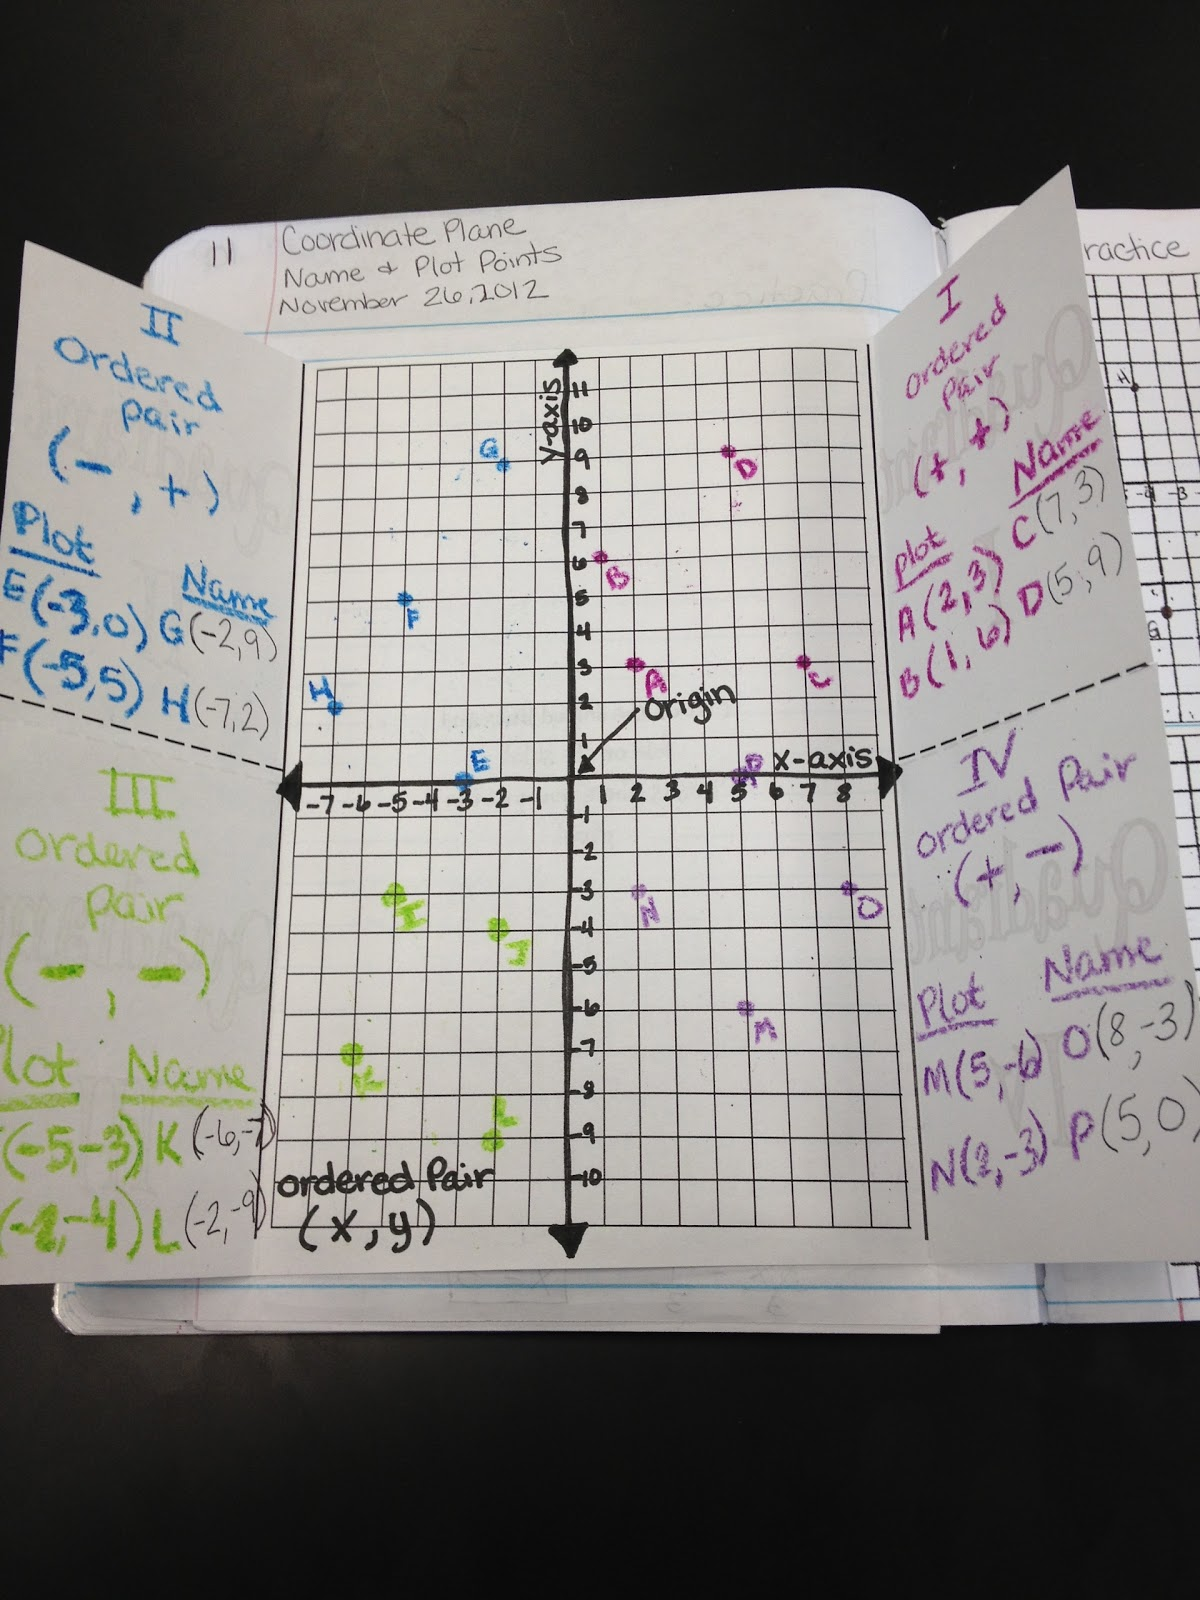 worksheet Graph Quadrants teaching in special education the coordinate plane middle was grid paper where students created two number lines and labeled different parts of plane